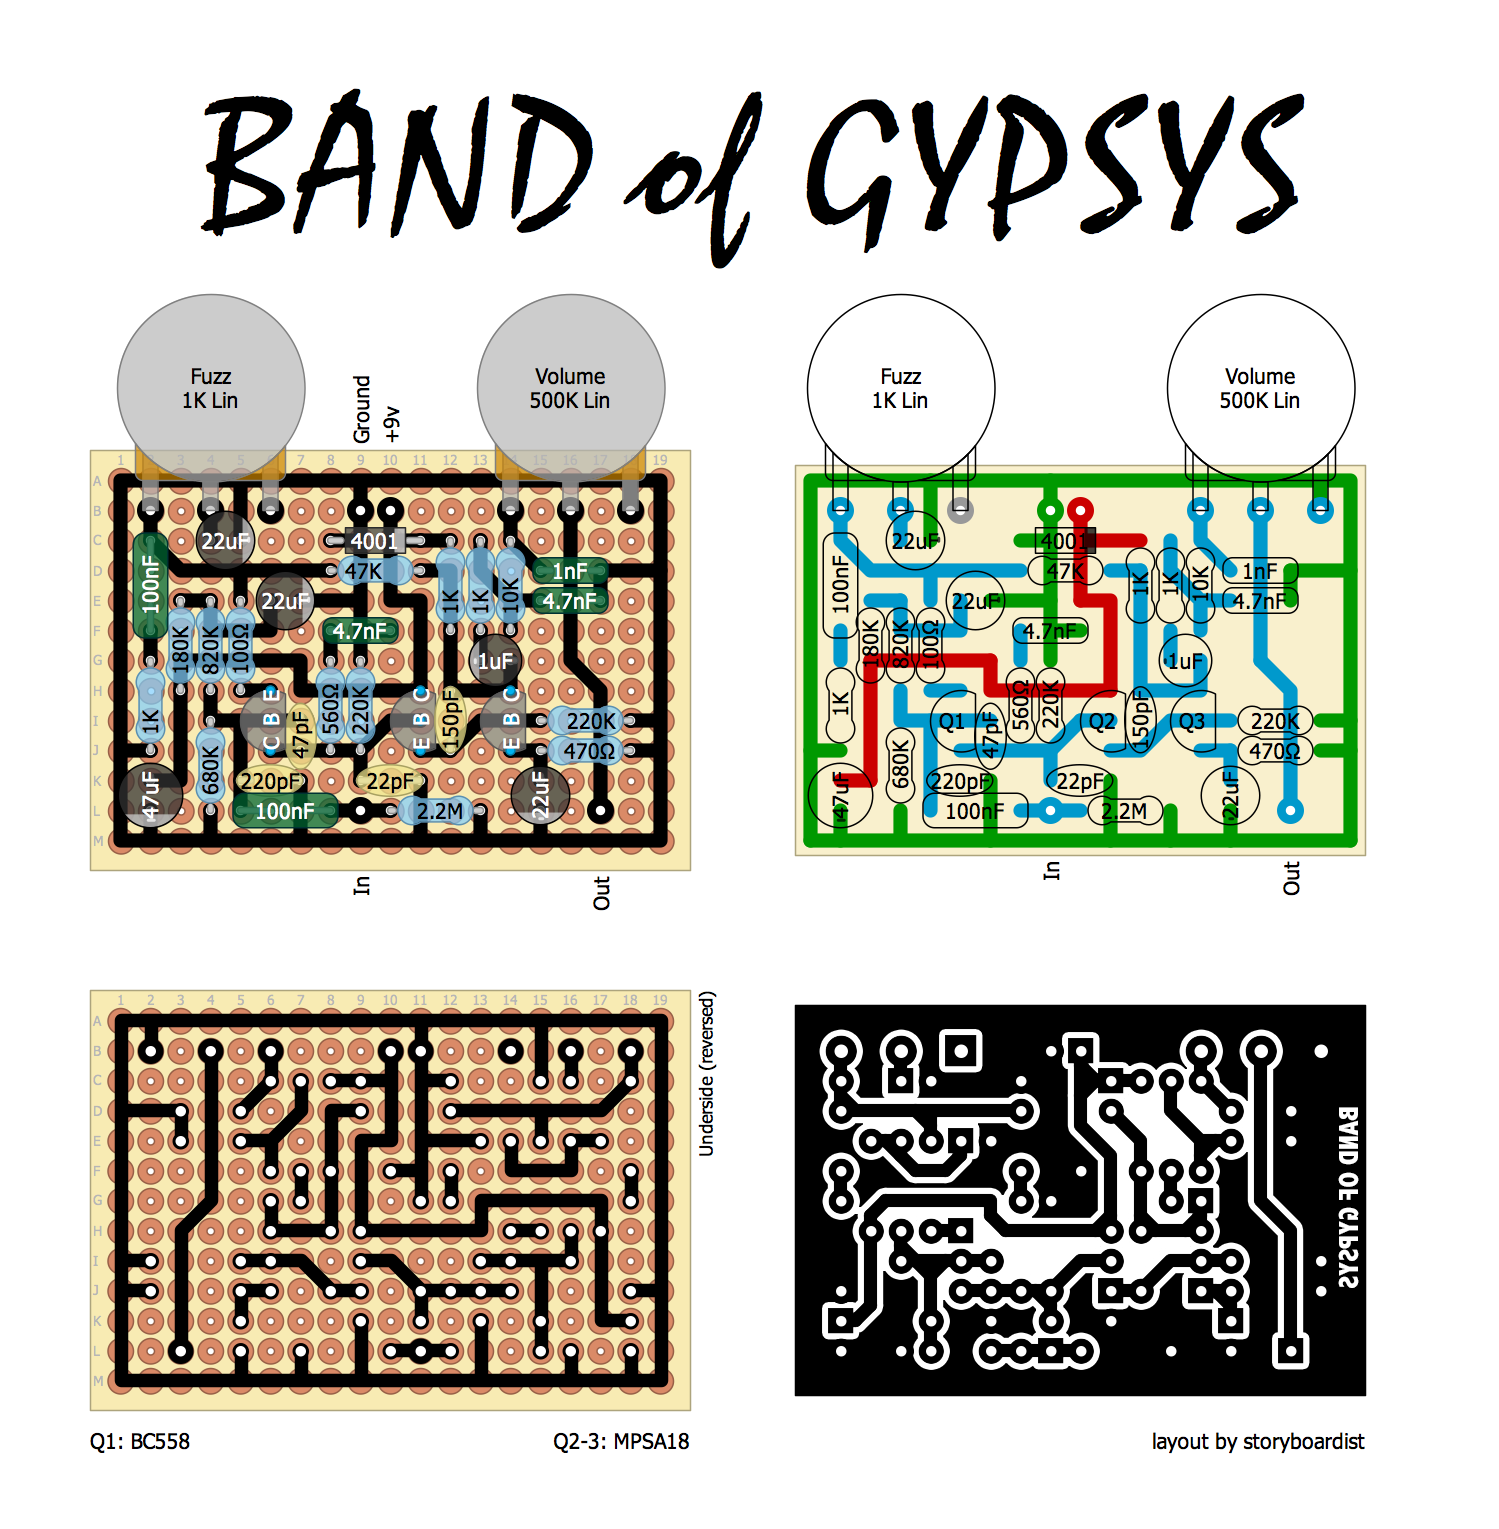 perf and pcb effects layouts dunlop band of gypsys fuzz face. Black Bedroom Furniture Sets. Home Design Ideas